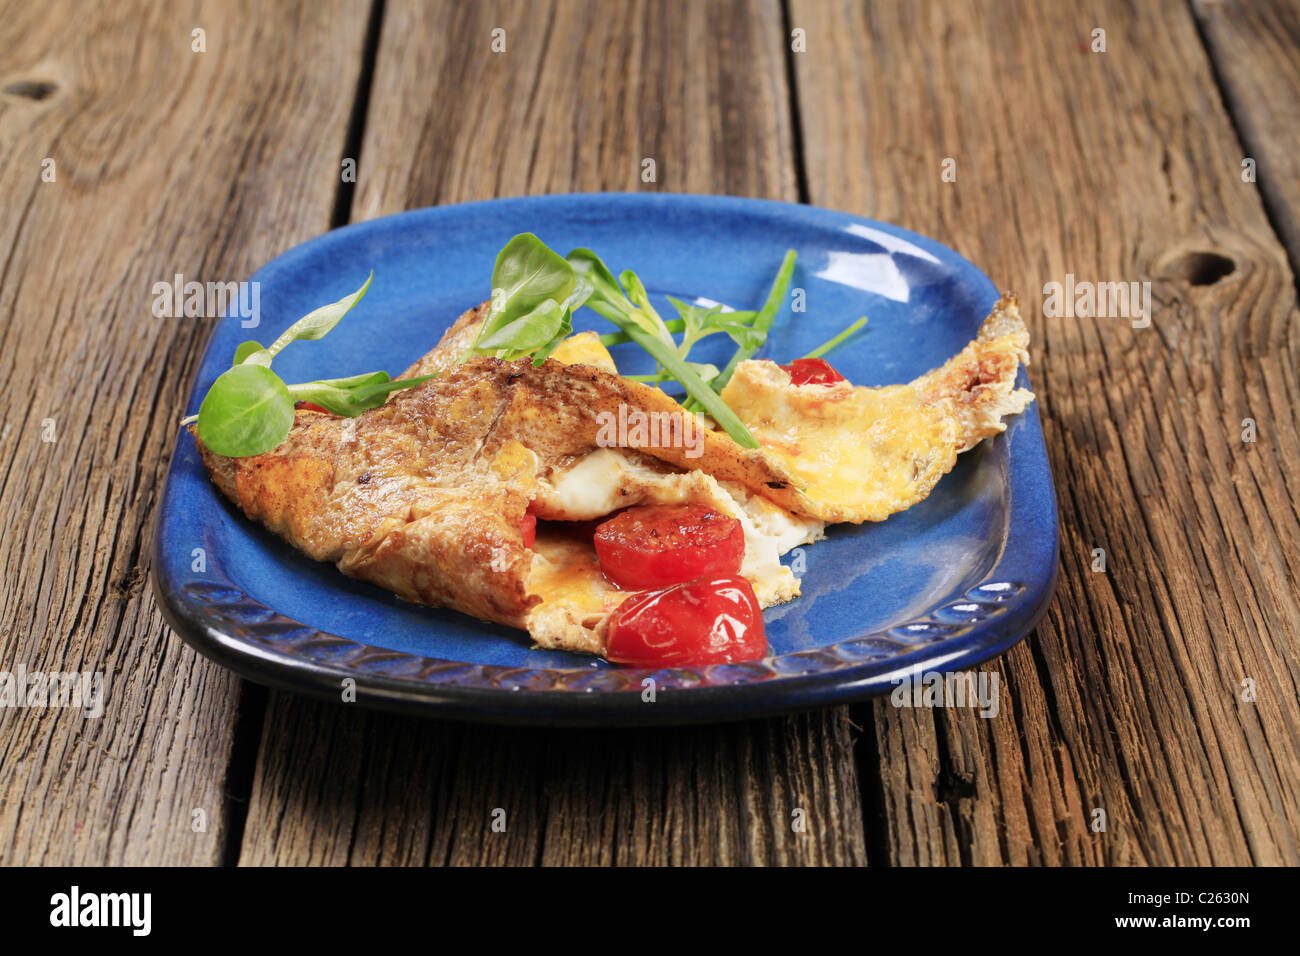 Egg omelet with tomatoes and salad greens - Stock Image